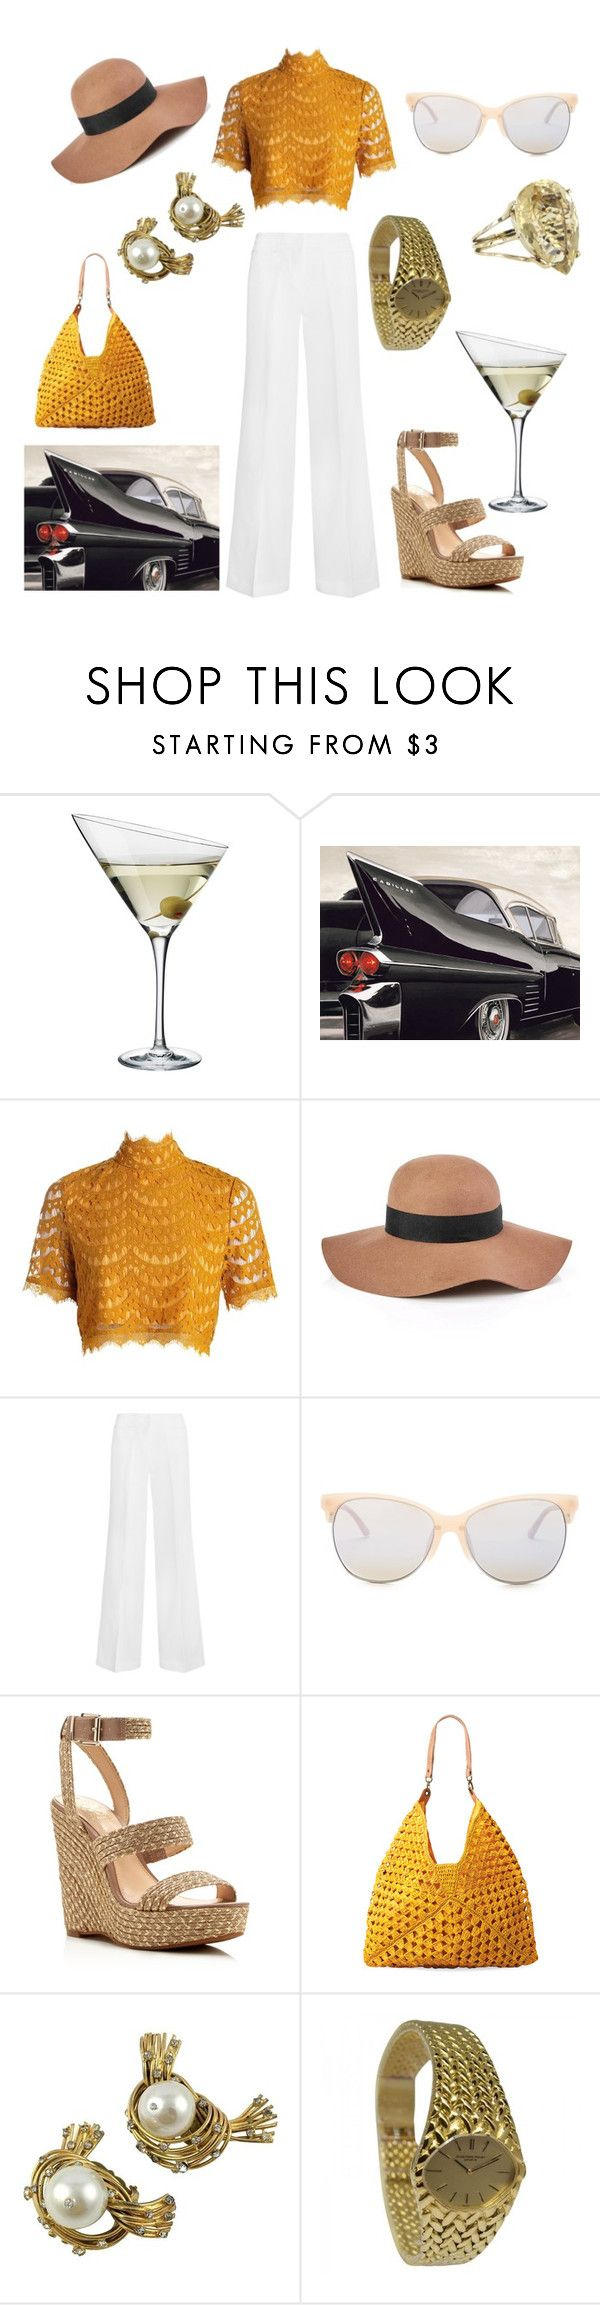 """a nod to the 50s"" by mrs-beany ❤ liked on Polyvore featuring Eva Solo, Reiss, MICHAEL Michael Kors, Smith Optics, Vince Camuto, Mar y Sol, Chanel, Audemars Piguet and Vintage"